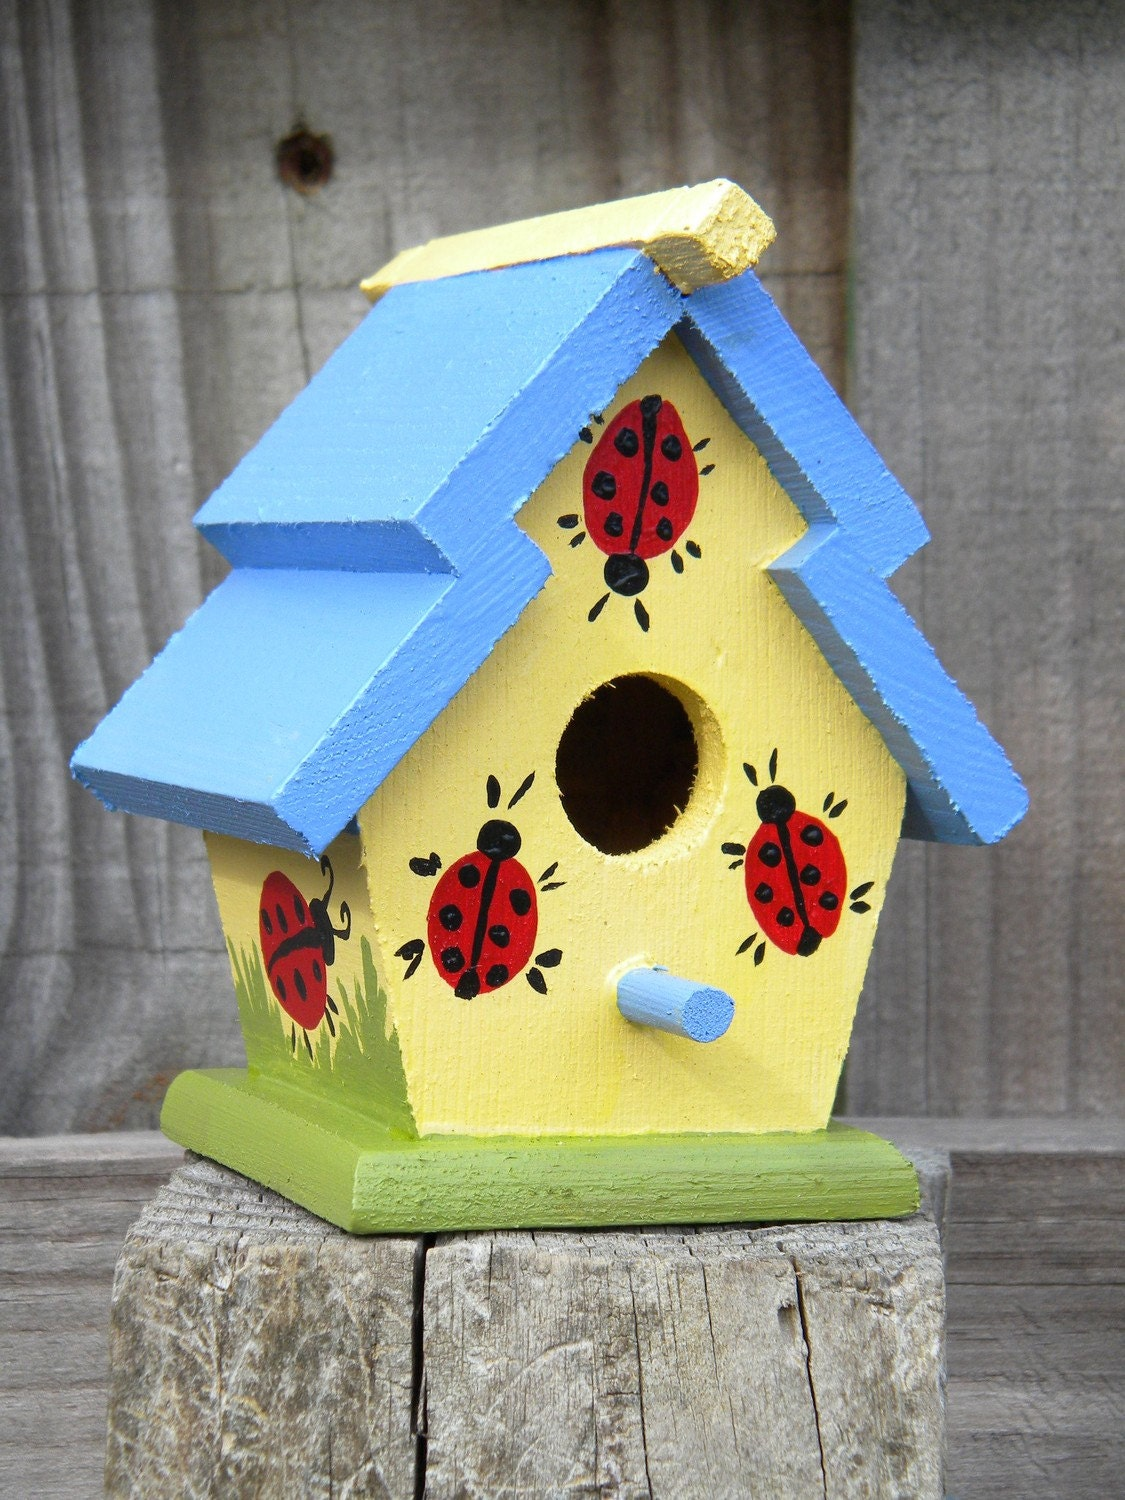 il_fullxfull.213207075 Painted Bird Houses Designs Ideas on home office design ideas, painted bird house craft, painted wood bird house, painted bird house with cat, computer nerd gift ideas, painted wood craft ideas, painted dresser ideas, pet cool house ideas, painted furniture, painted red and white bird, painted owl bird house, jewelry designs ideas, painted bird house roof, painted decorative bird houses designs, painted gingerbread house craft,